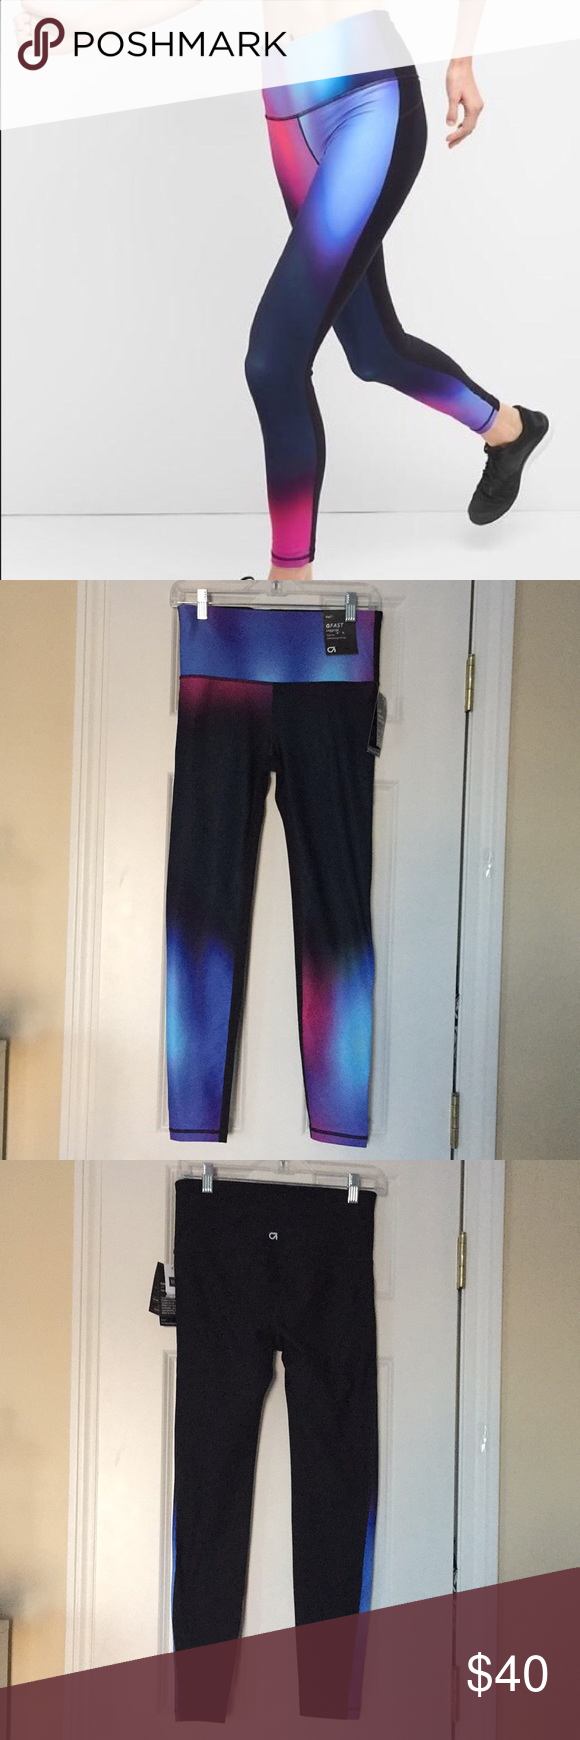 6a734b454fd5f NWT GAPFIT BLACKOUT TECHNOLOGY OMBRÉ LEGGINGS NWT G FAST GAP HIGH RISE  OMBRÉ FITTED THROUGH THE